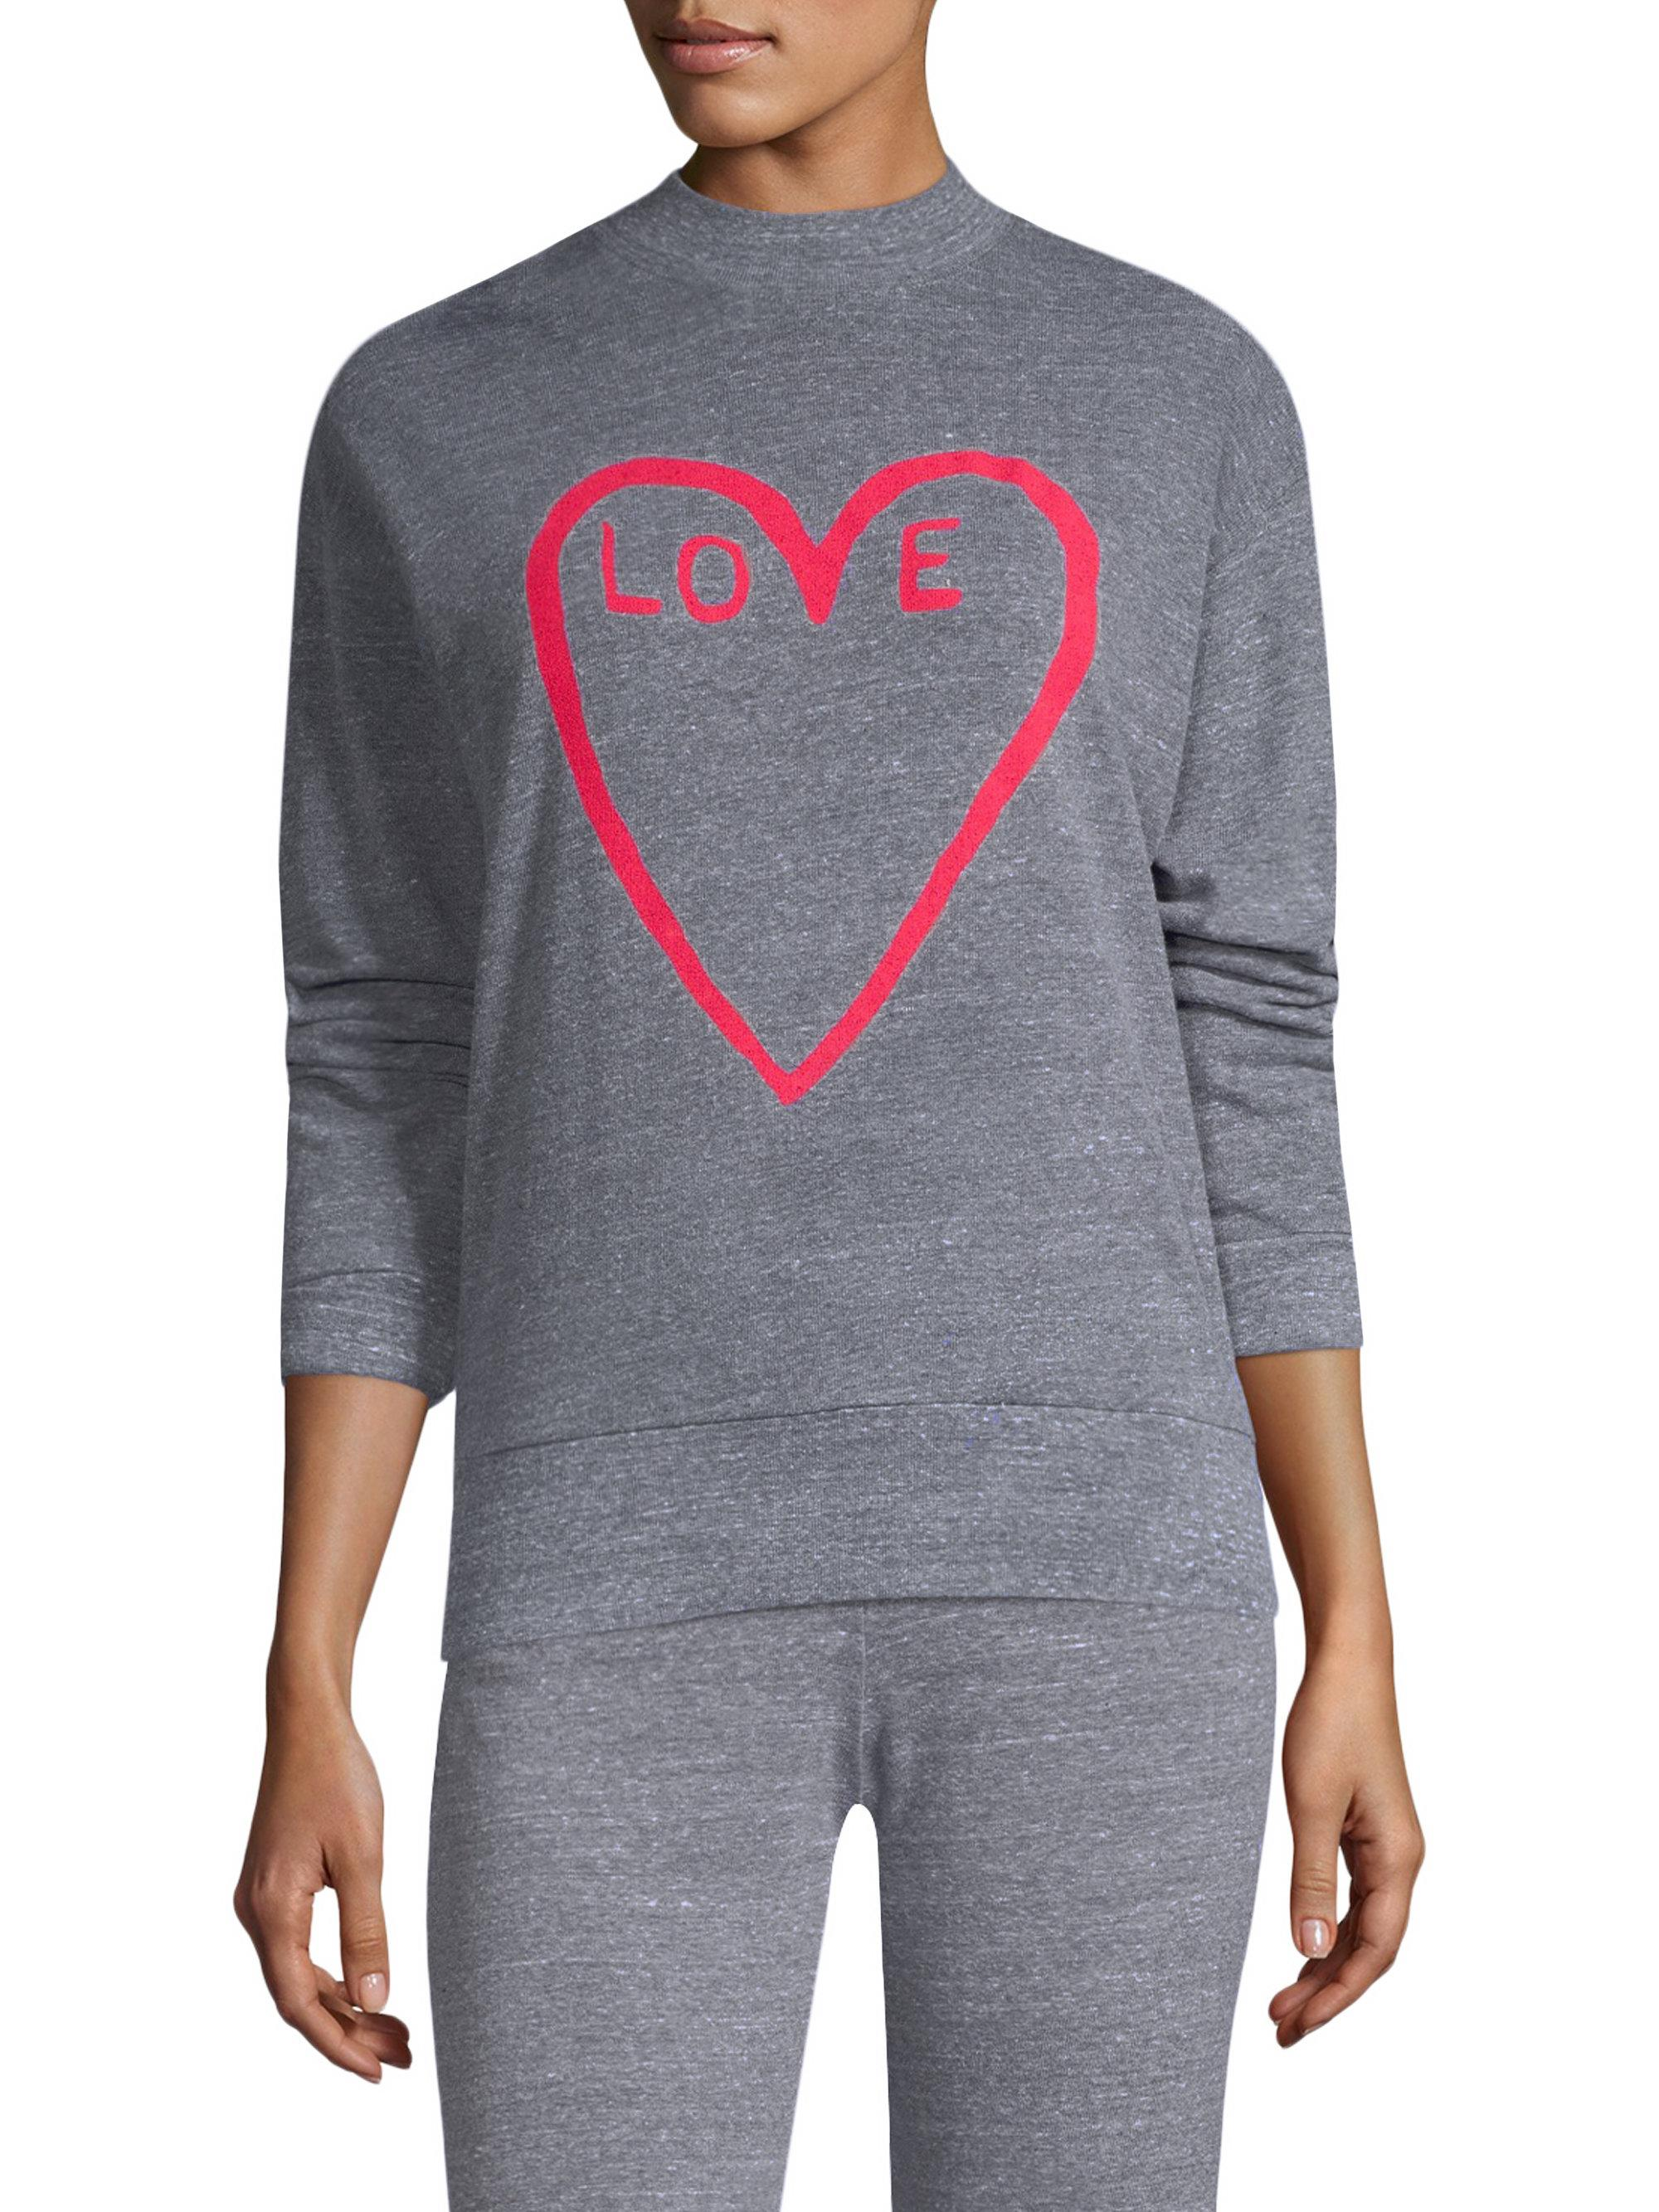 8d189b22144 Monrow Love Crewneck Sweatshirt in Gray - Lyst